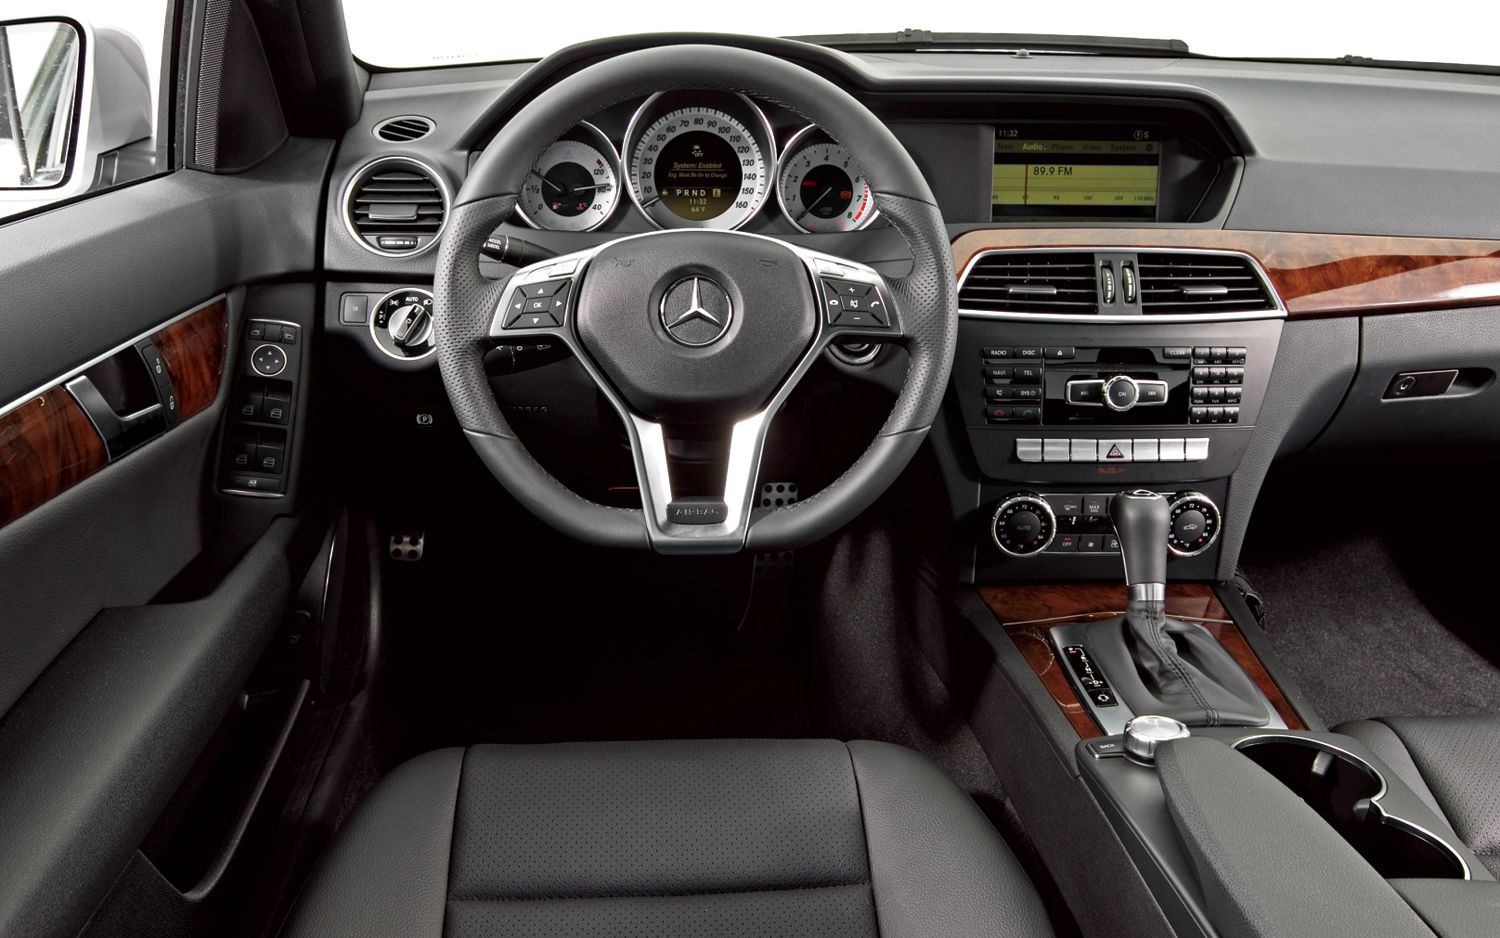 2012 mercedes-benz c300 4matic - editors' notebook - automobile magazine